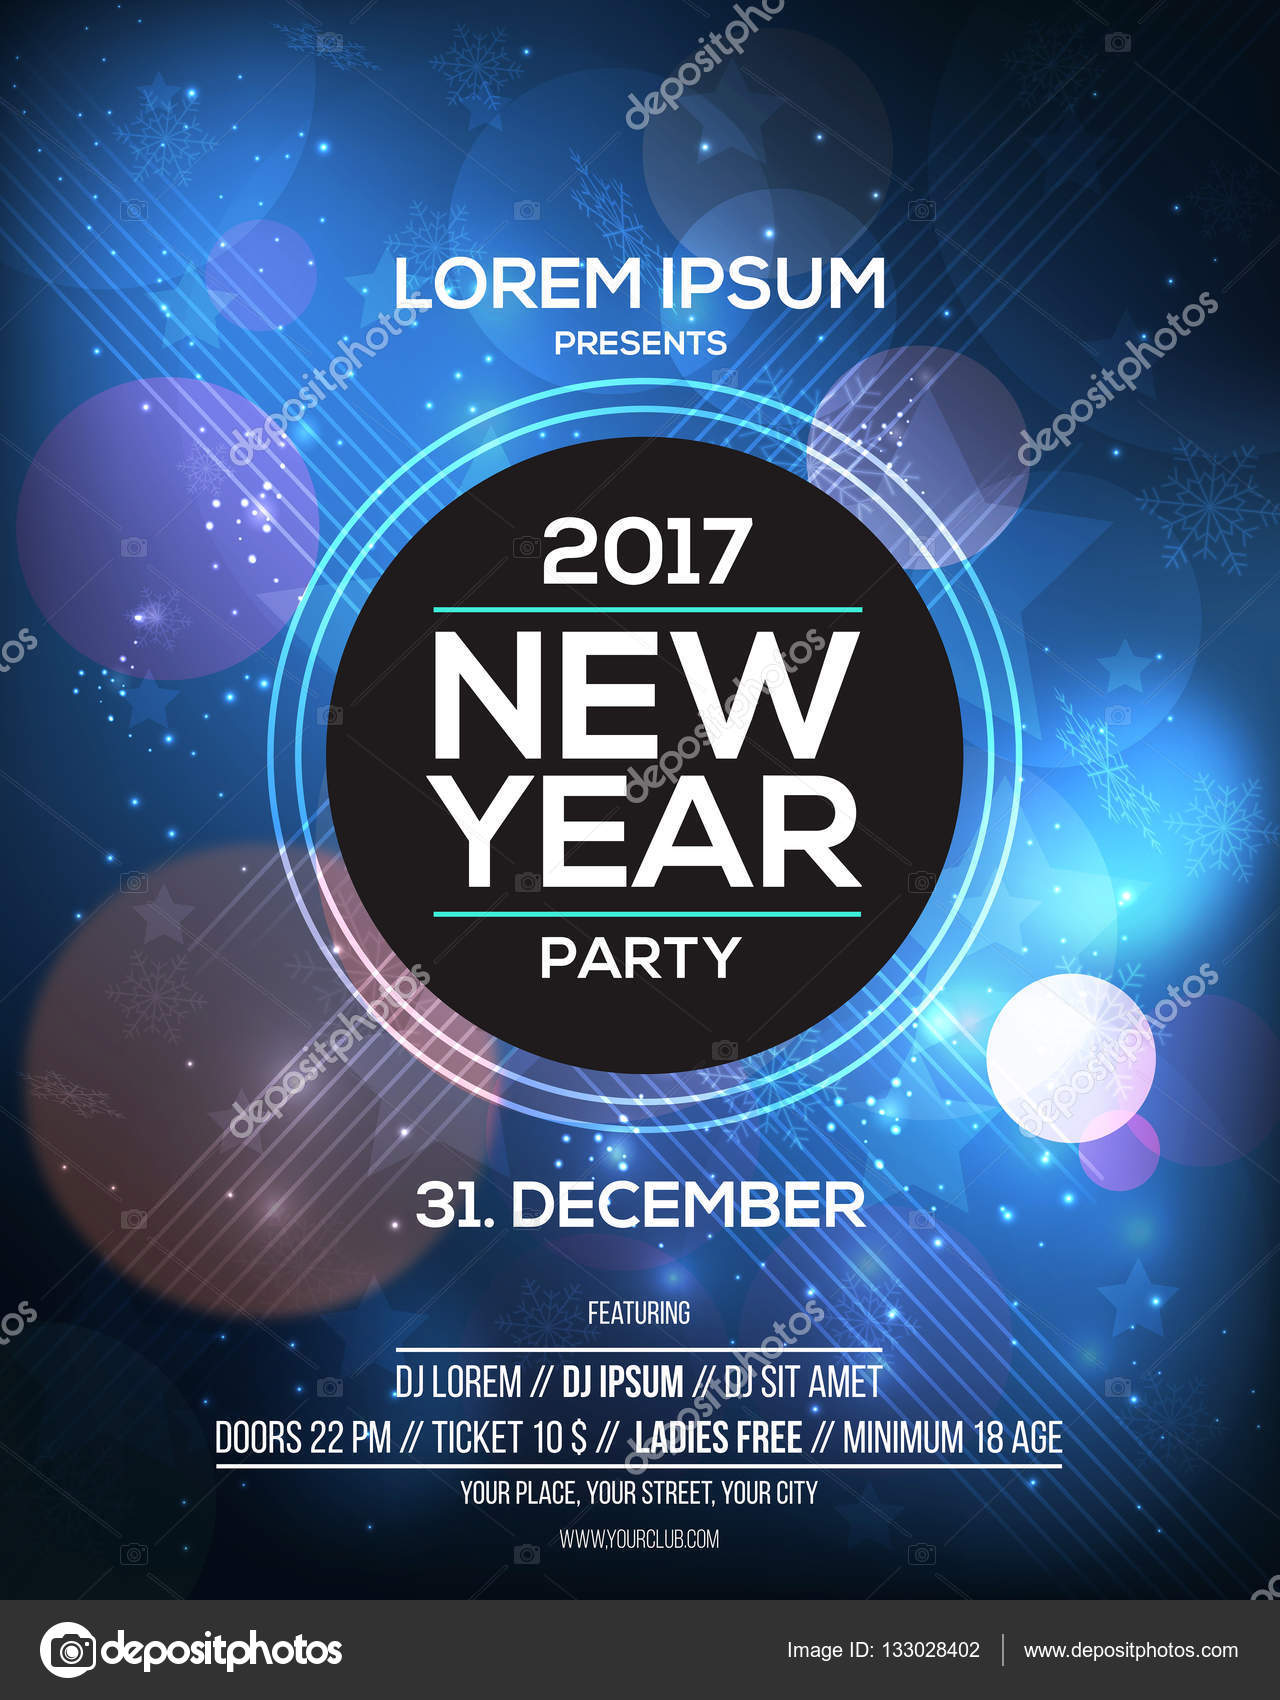 happy new year 2017 flyer template for websites and mobile websites can be used for posters web banners promotion materials